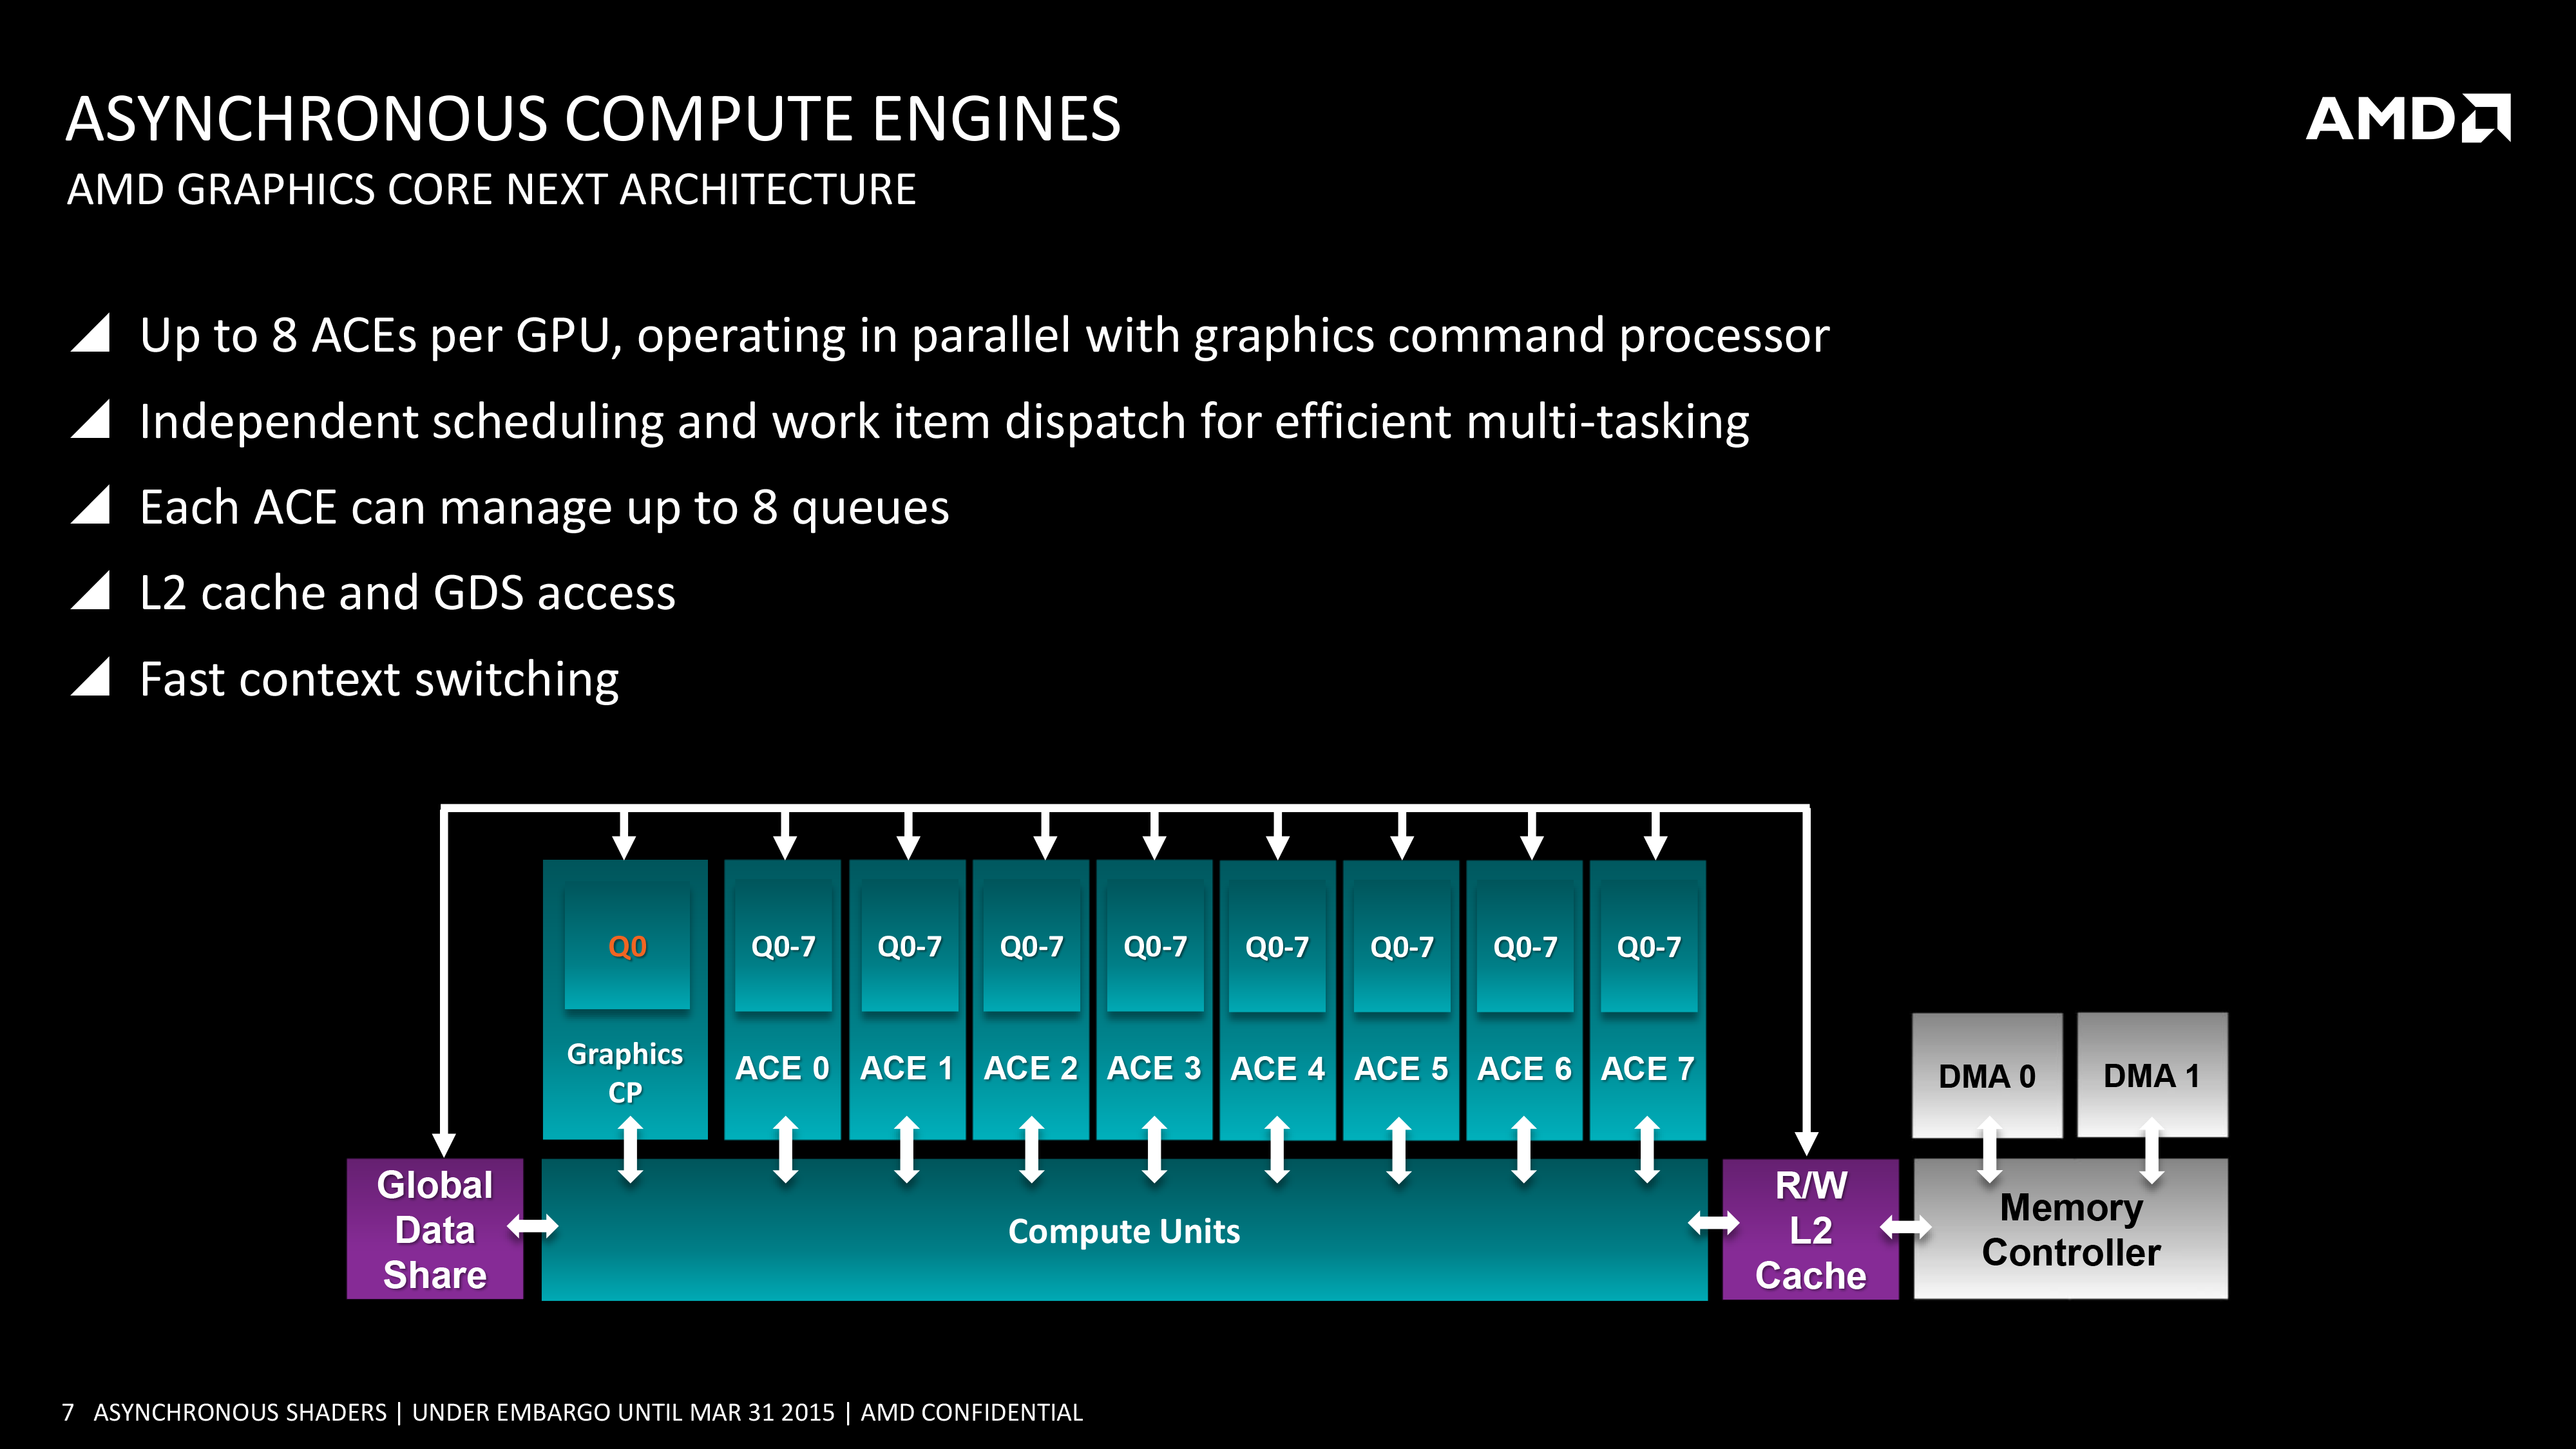 AMD Asynchronous Compute Engine ACE